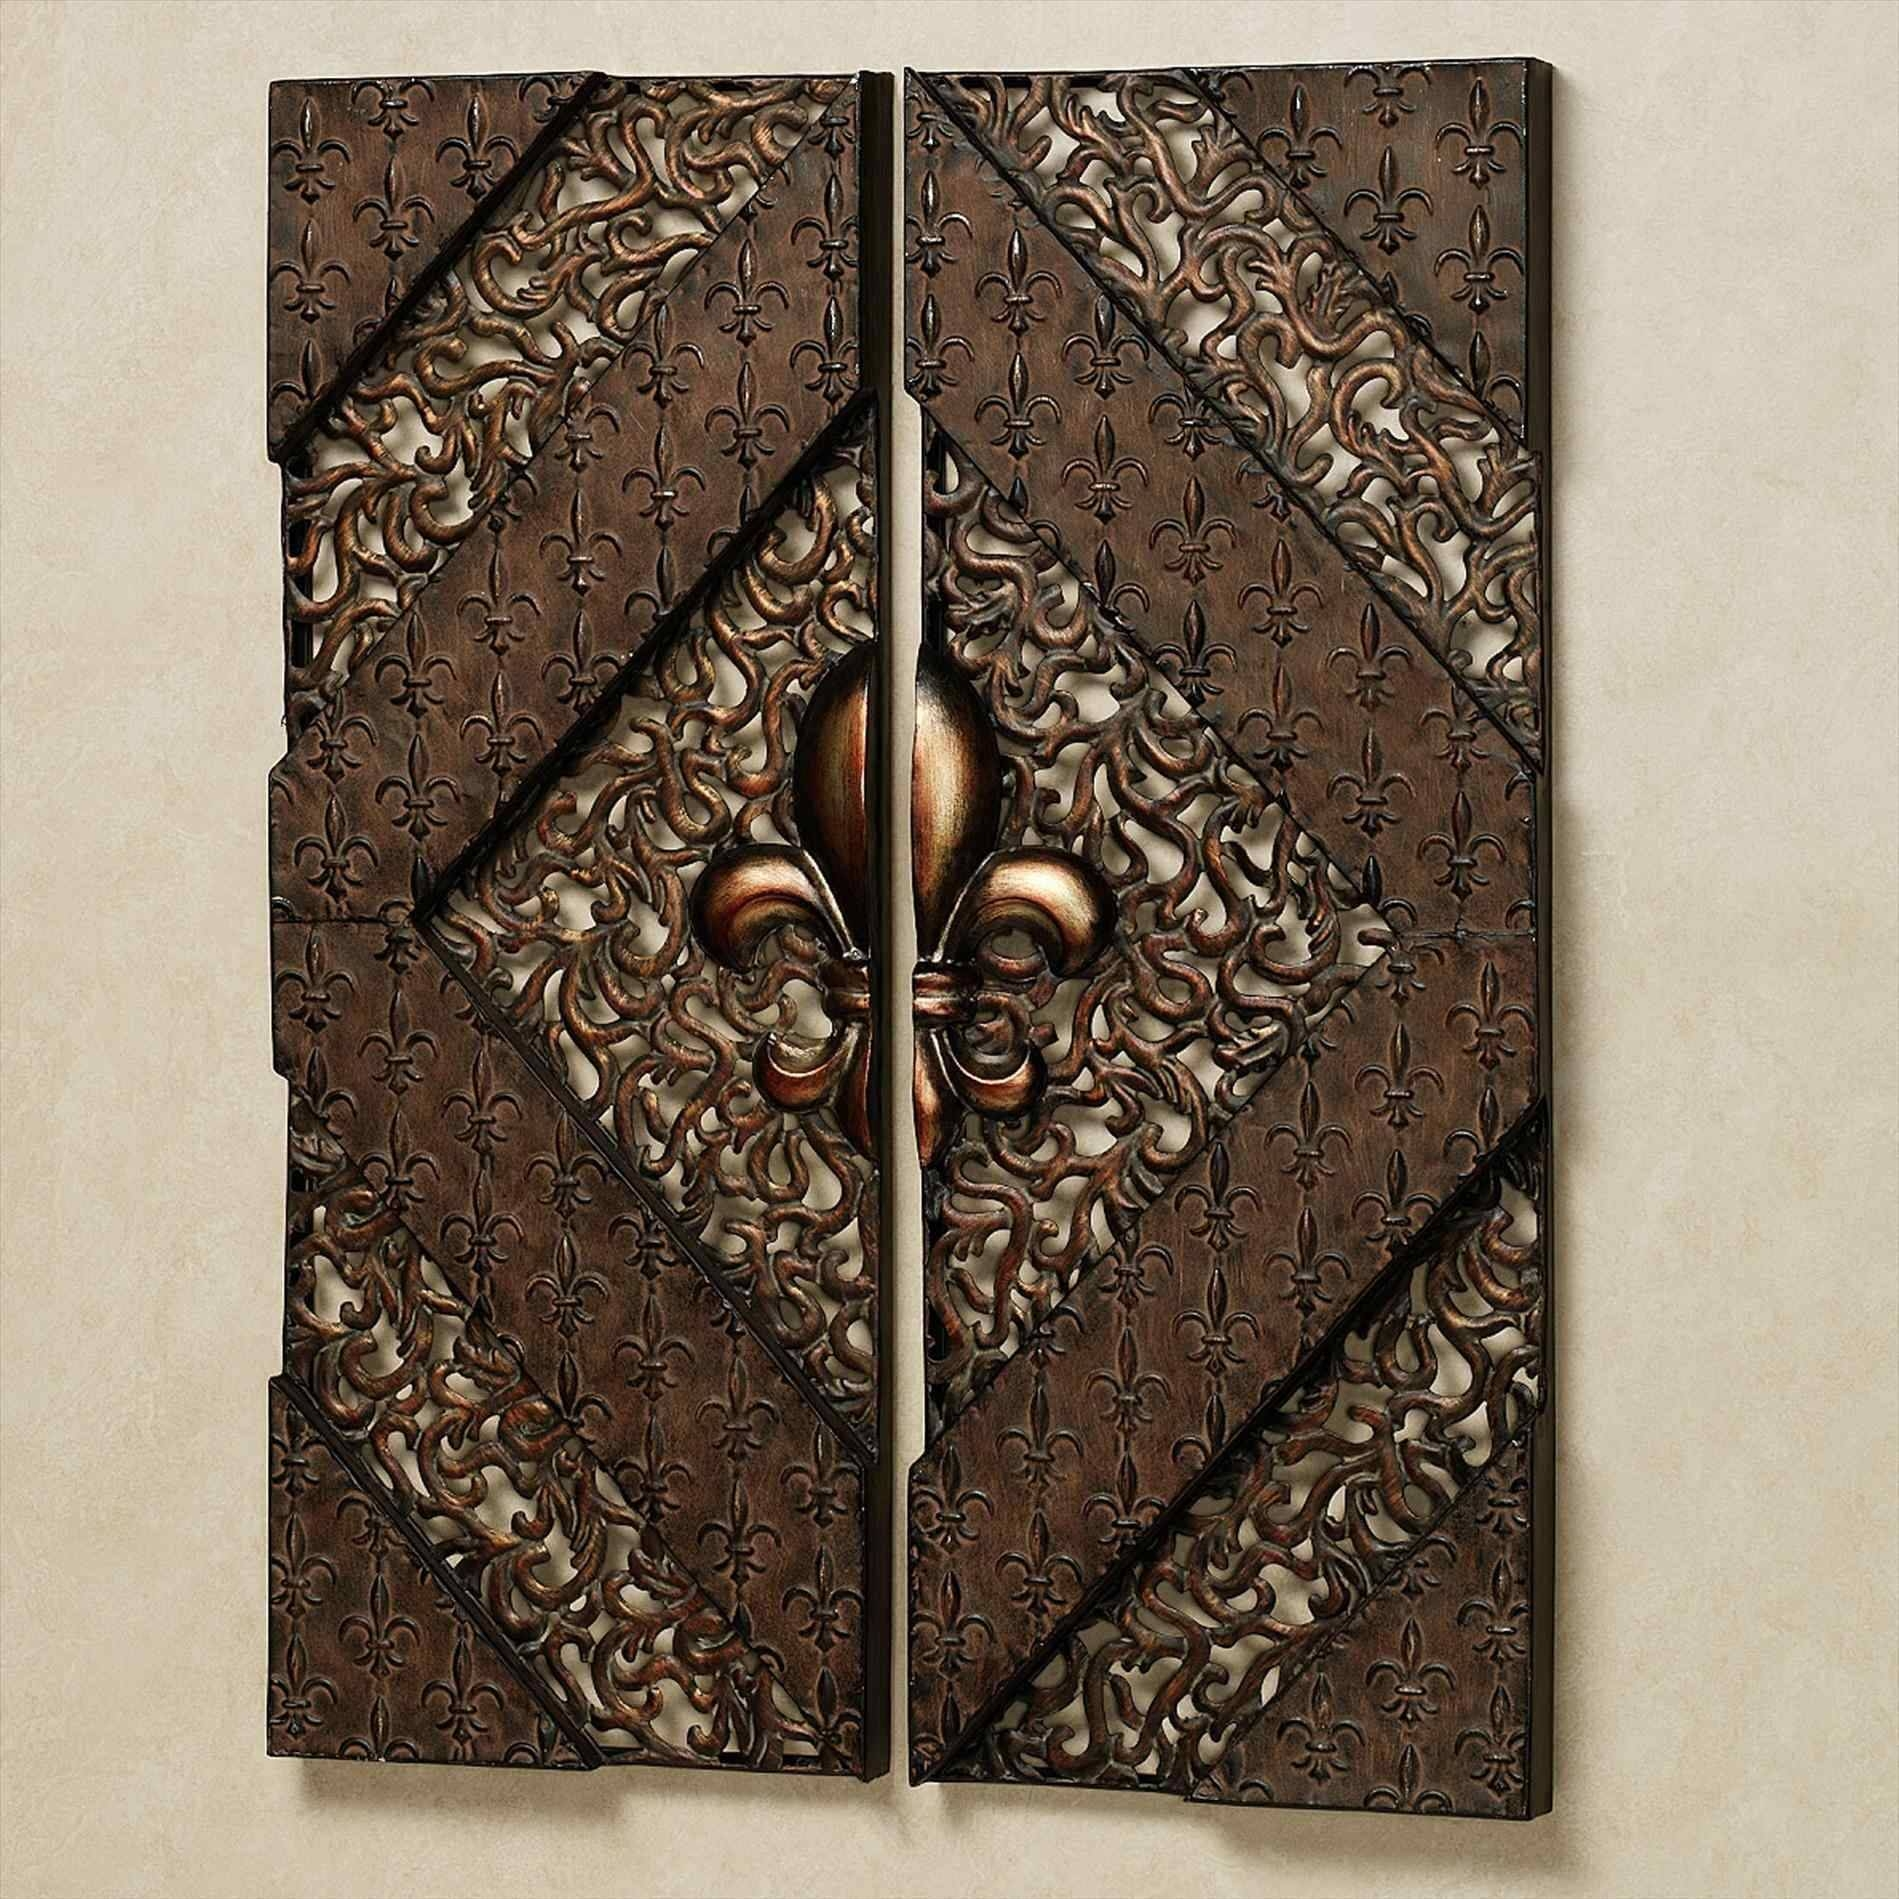 Images Music Wood Texture Wall Rust Color Material Urban Faux Within Most Current Faux Metal Wall Art (Gallery 11 of 20)